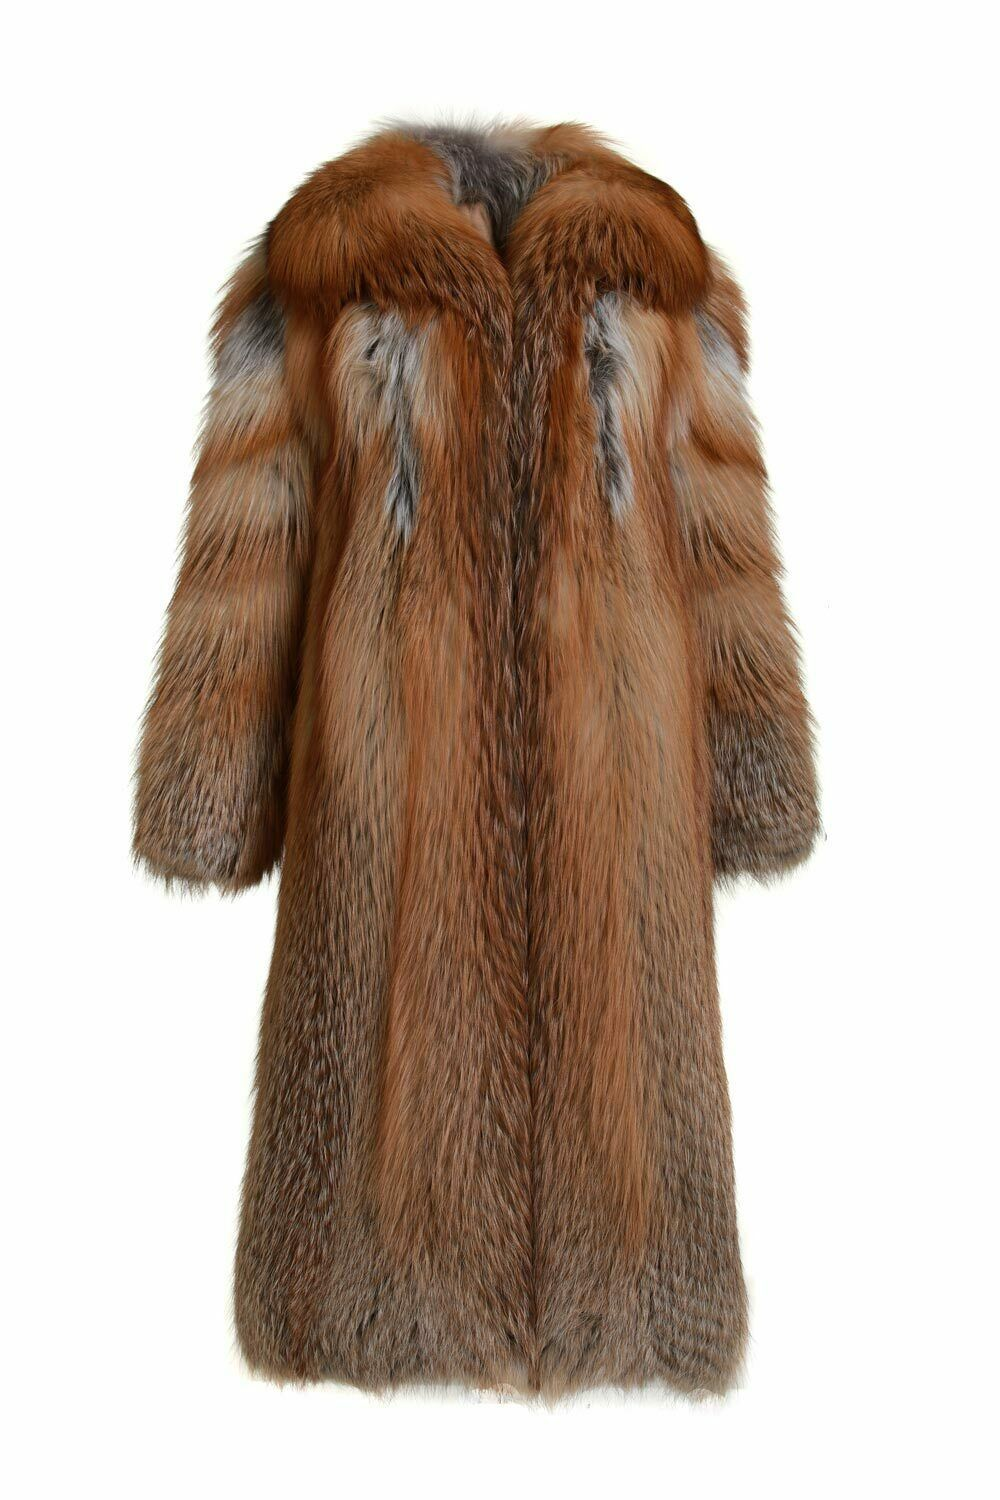 Primary image for Red Fox Fur Coat Full Length Fully Let out Shawl Collar SAGA No Reserve Price